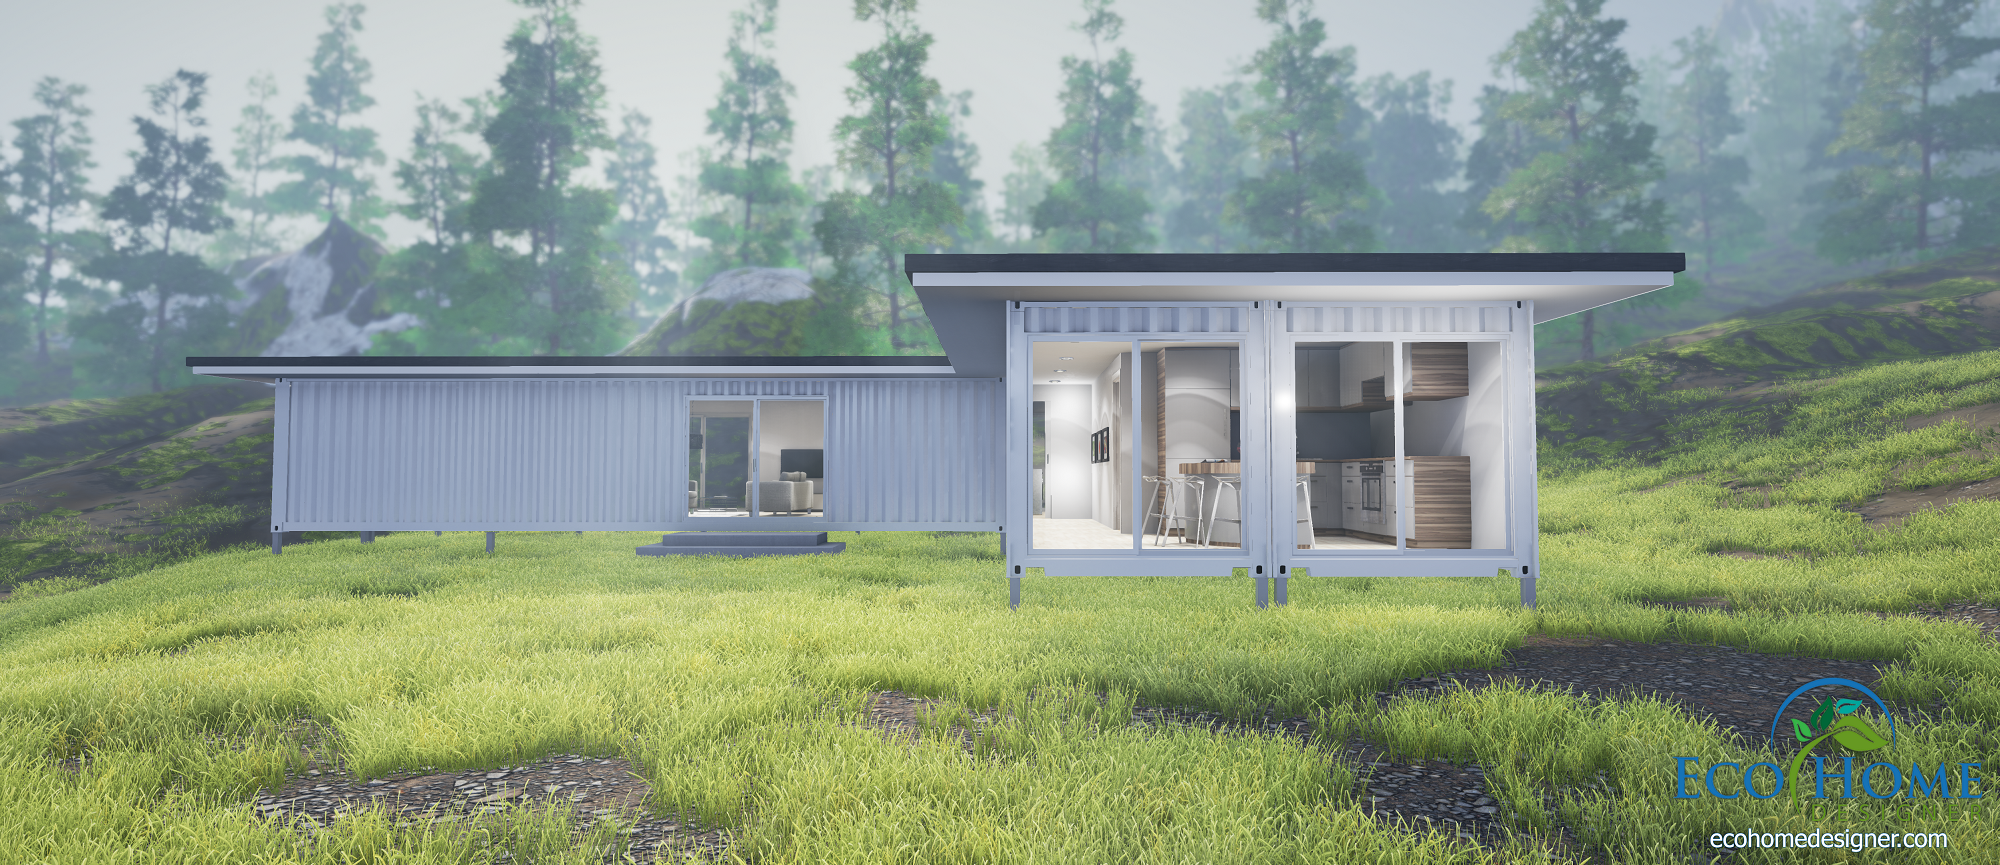 Sch4 4 x 40ft three bedroom container home eco home designer for 3 40 ft container home